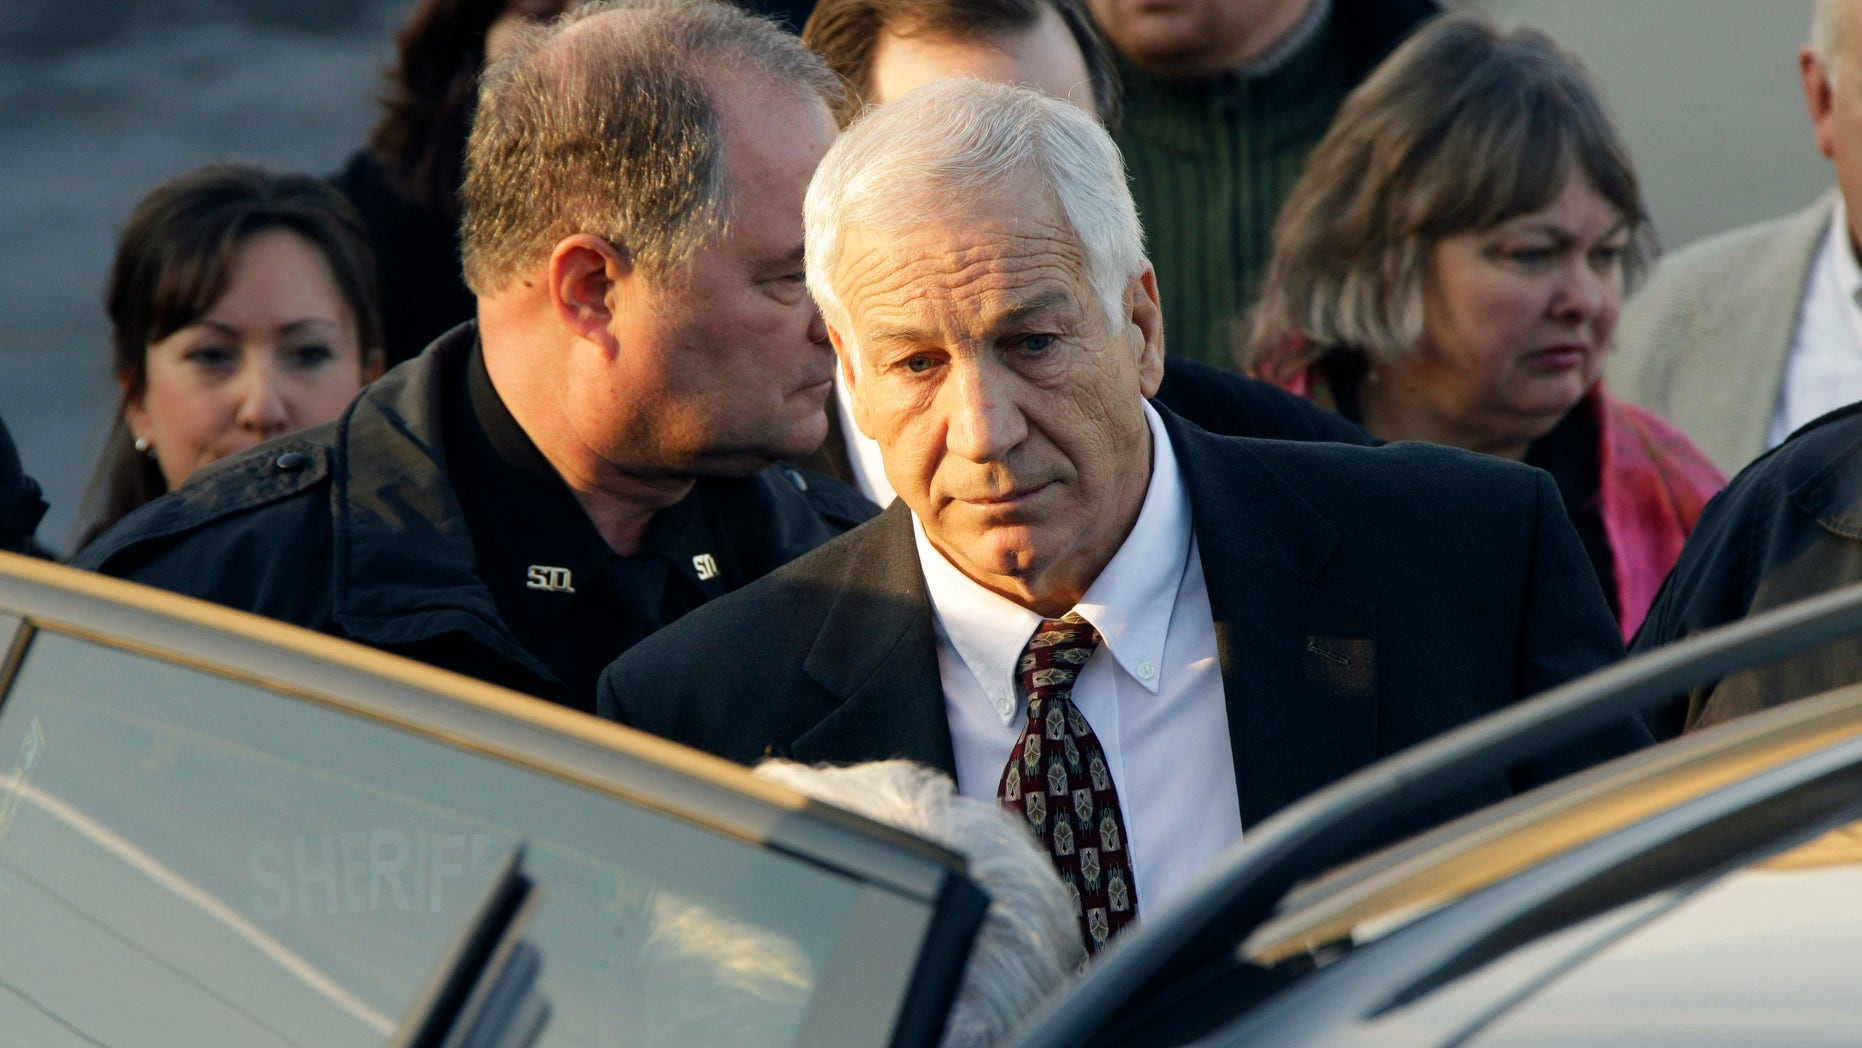 December 13: Former Penn State University assistant football coach Jerry Sandusky walks to his attorney's car as he leaves the Centre County Courthouse after waiving a preliminary hearing in Bellefonte, Pa.